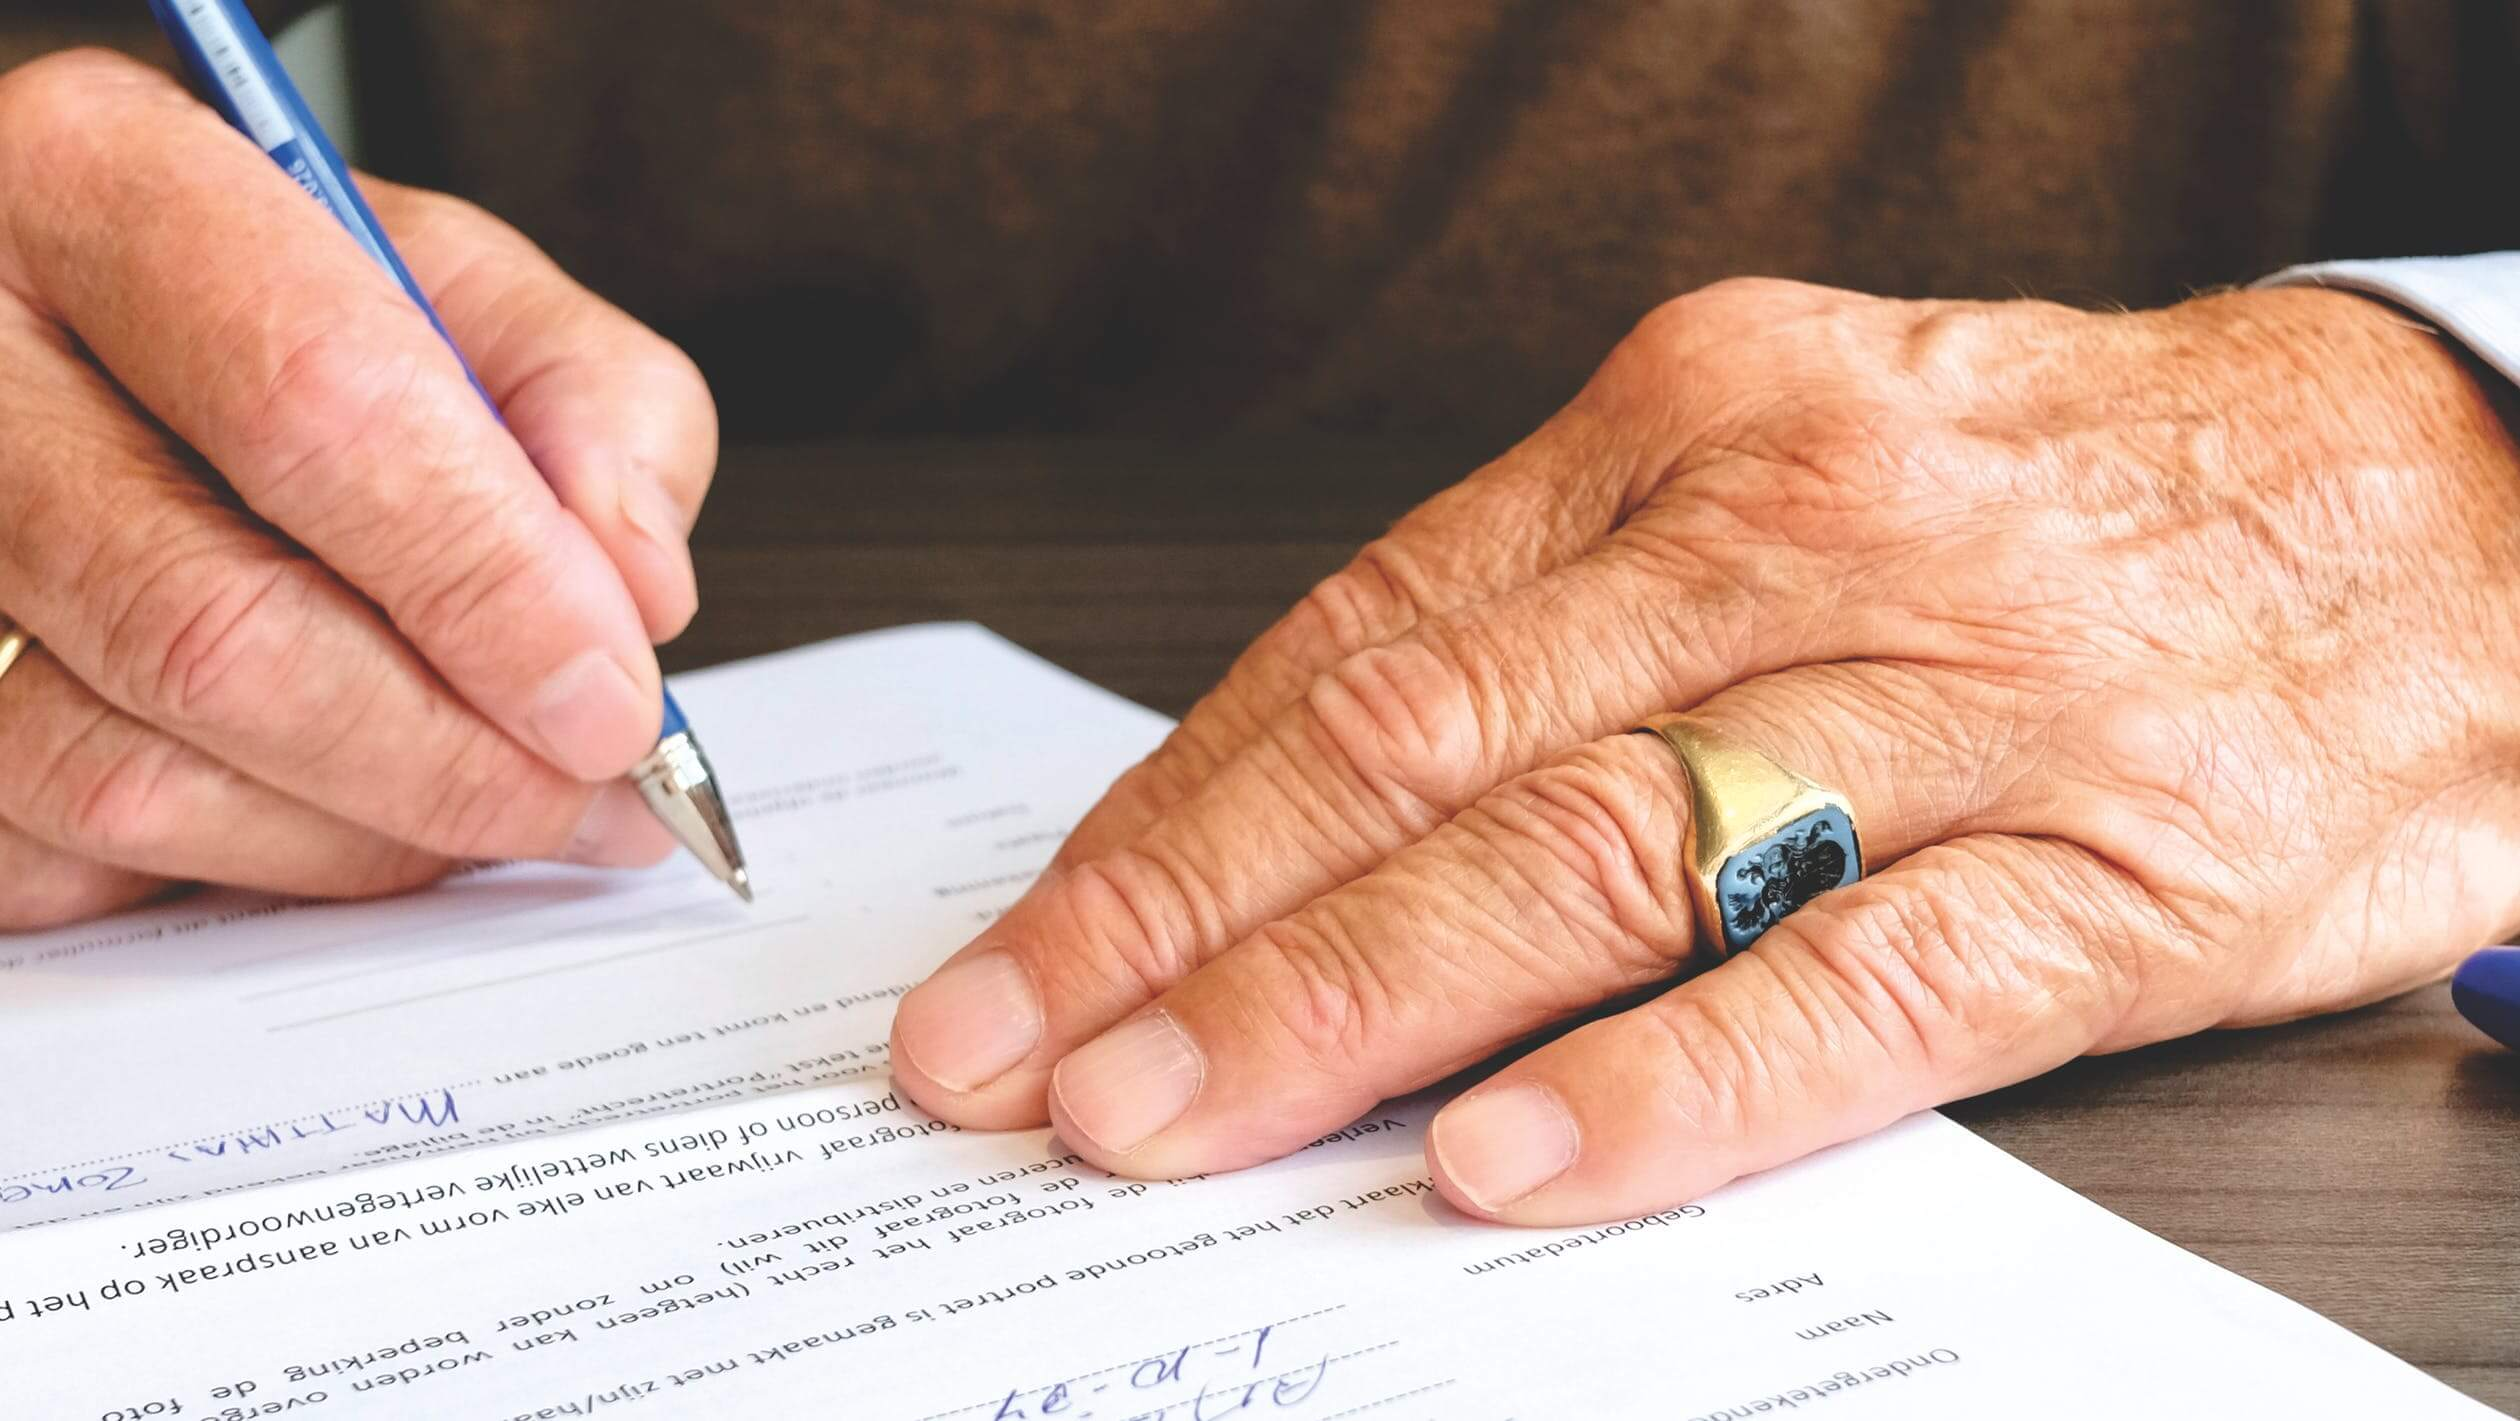 A man signing a legal document. Having legal paperwork is important when you move your loved one to an assisted living facility.